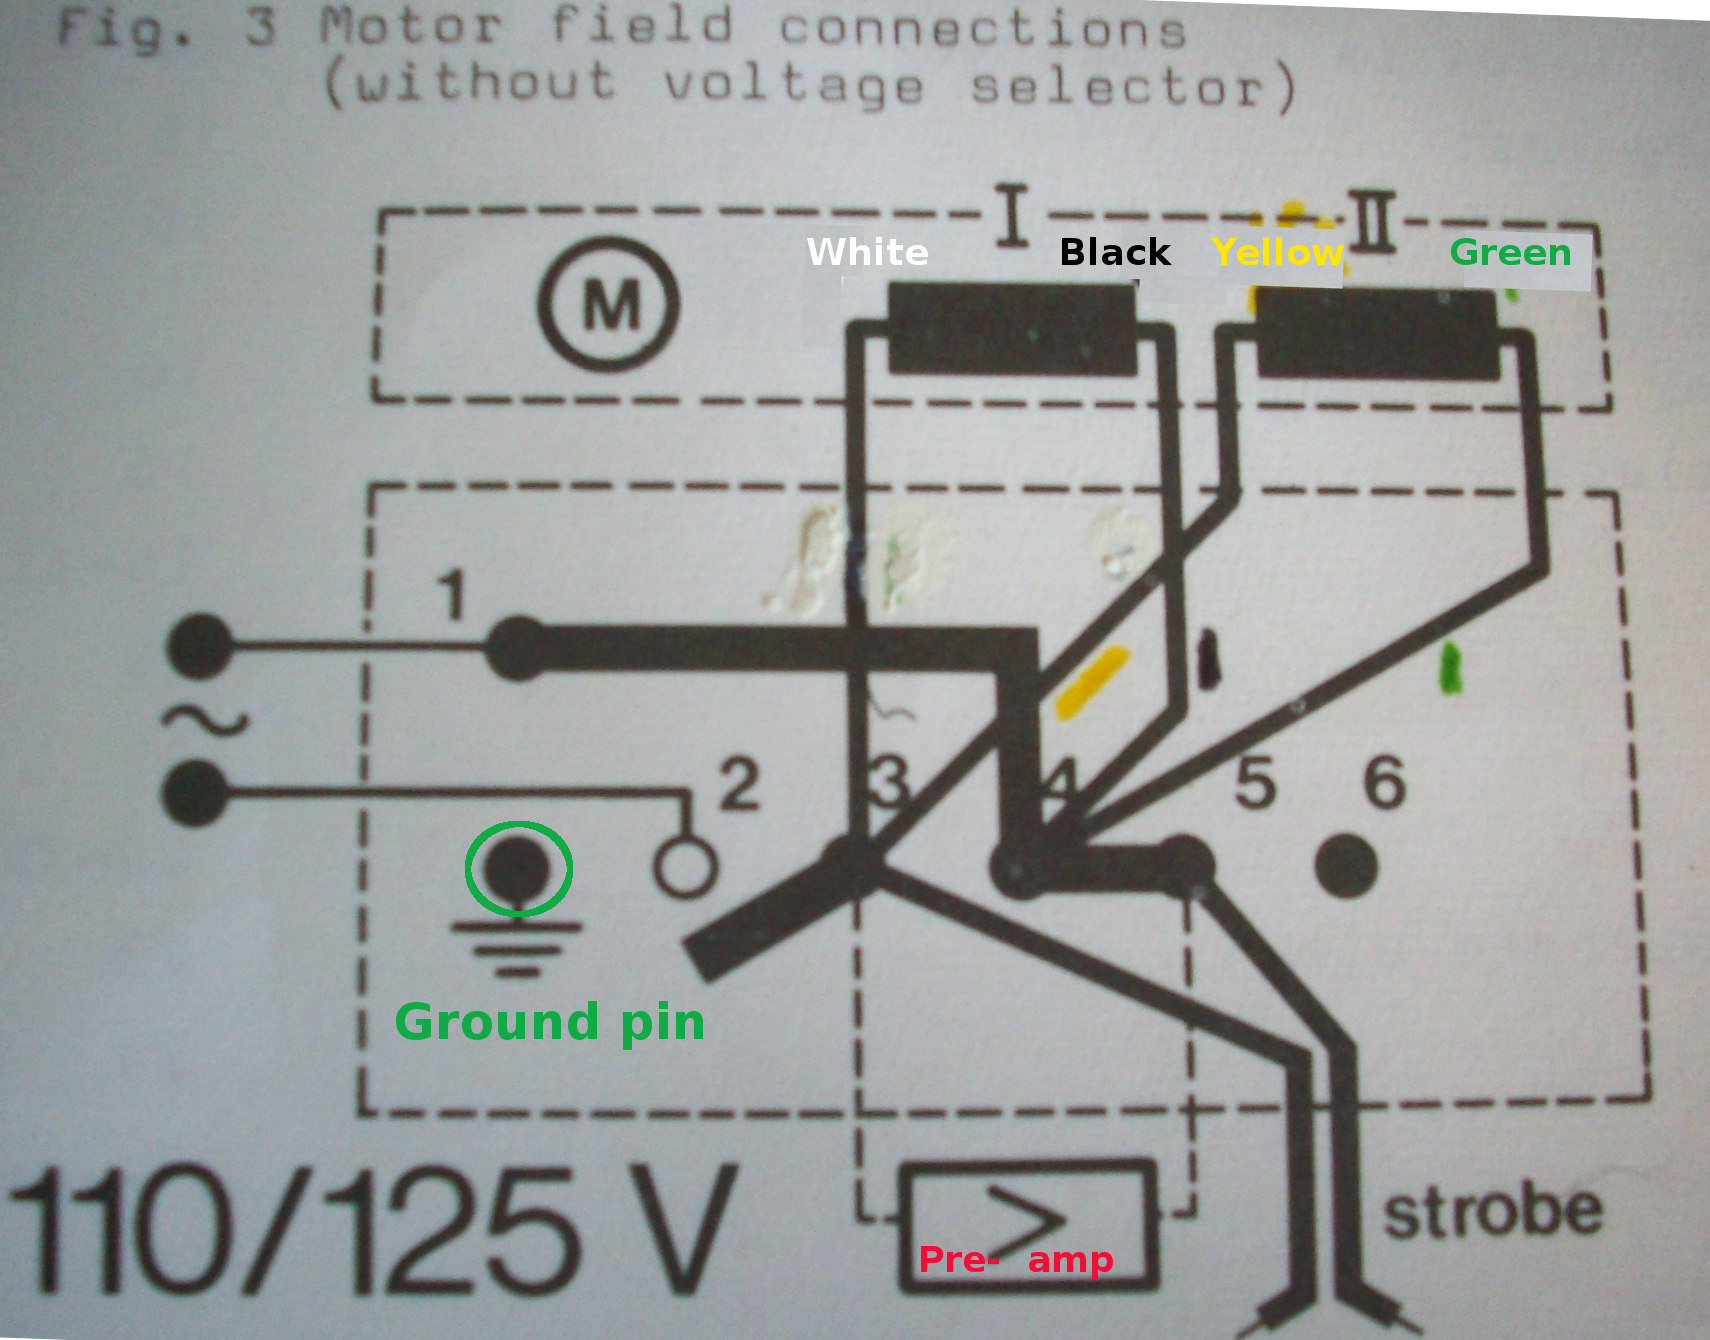 008 wiring diagram 110 volts with colours .JPG